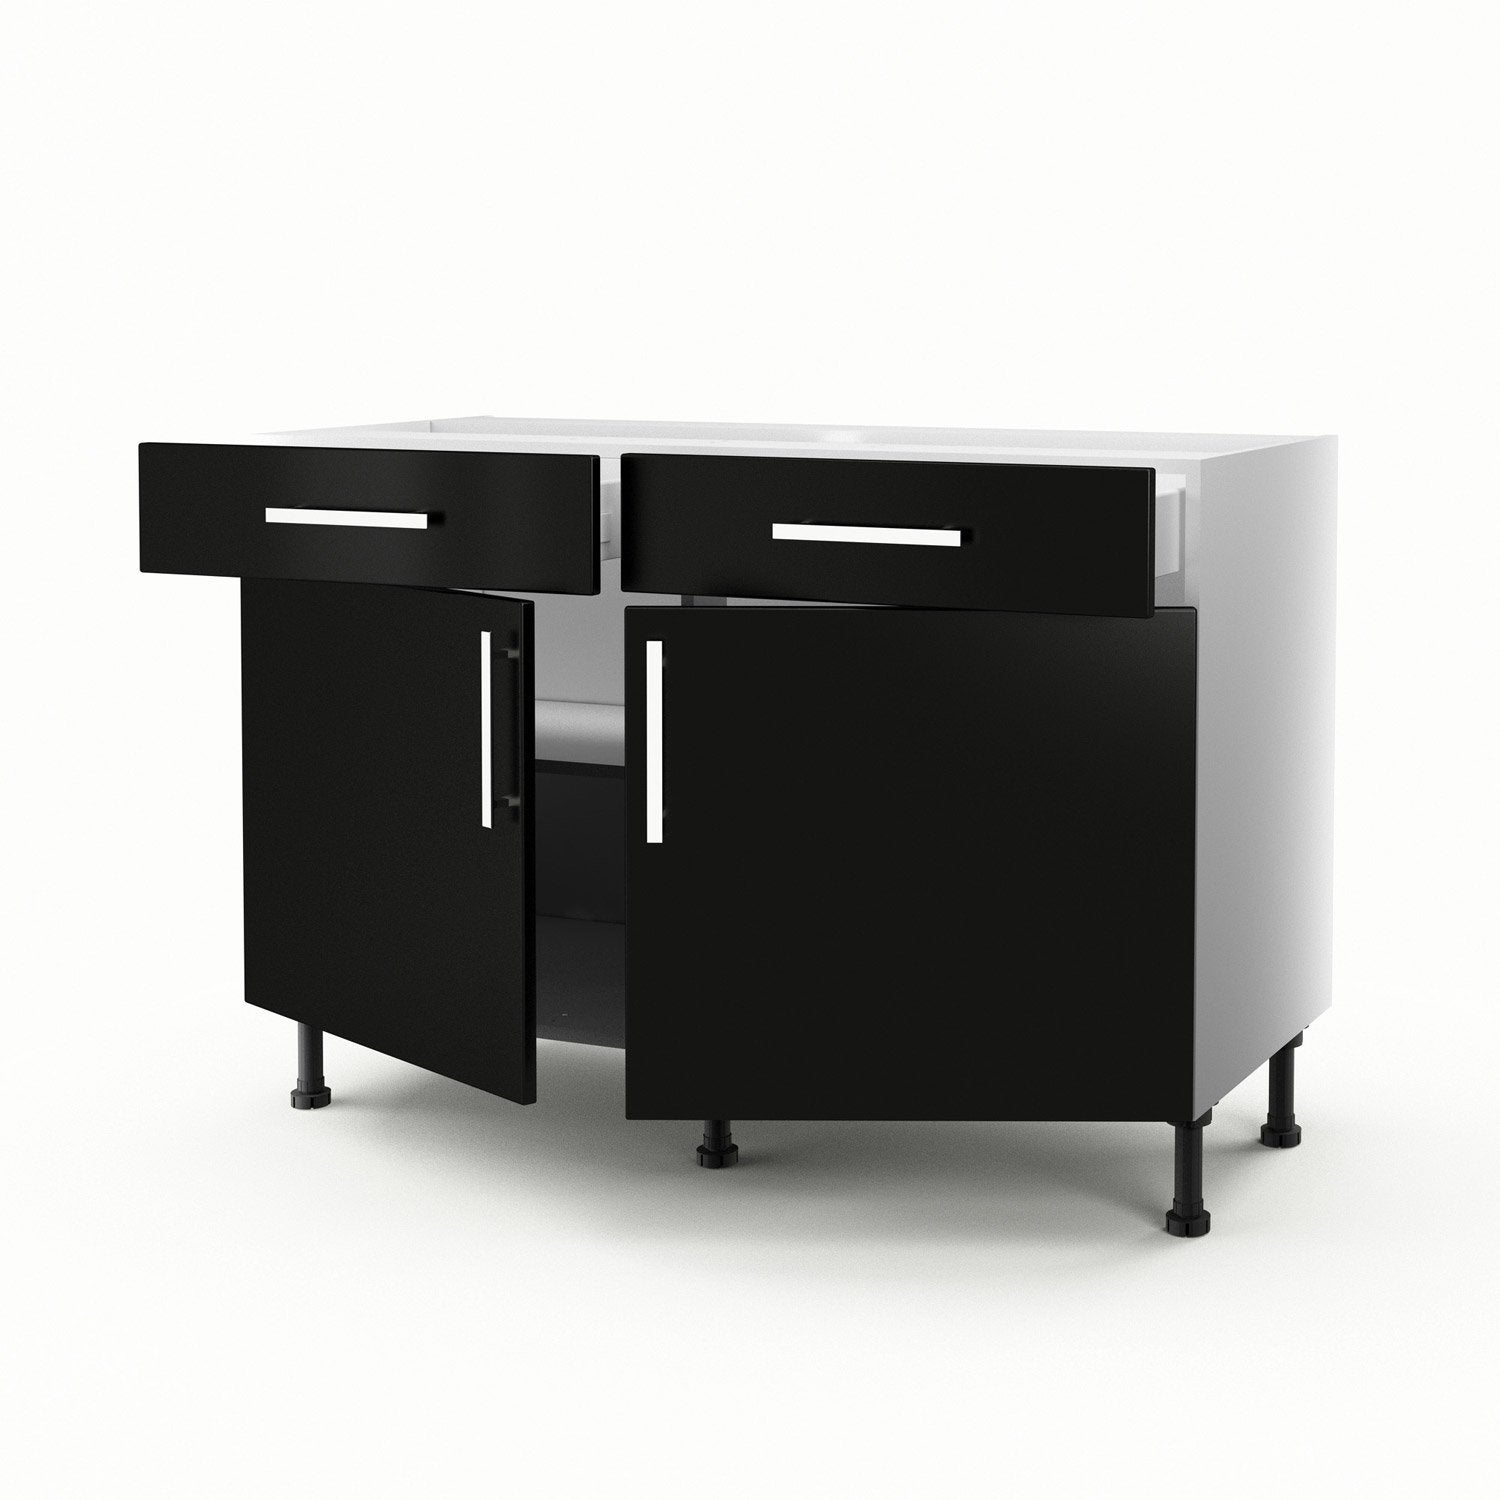 meuble de cuisine bas noir 2 portes 2 tiroirs d lice x x cm leroy merlin. Black Bedroom Furniture Sets. Home Design Ideas